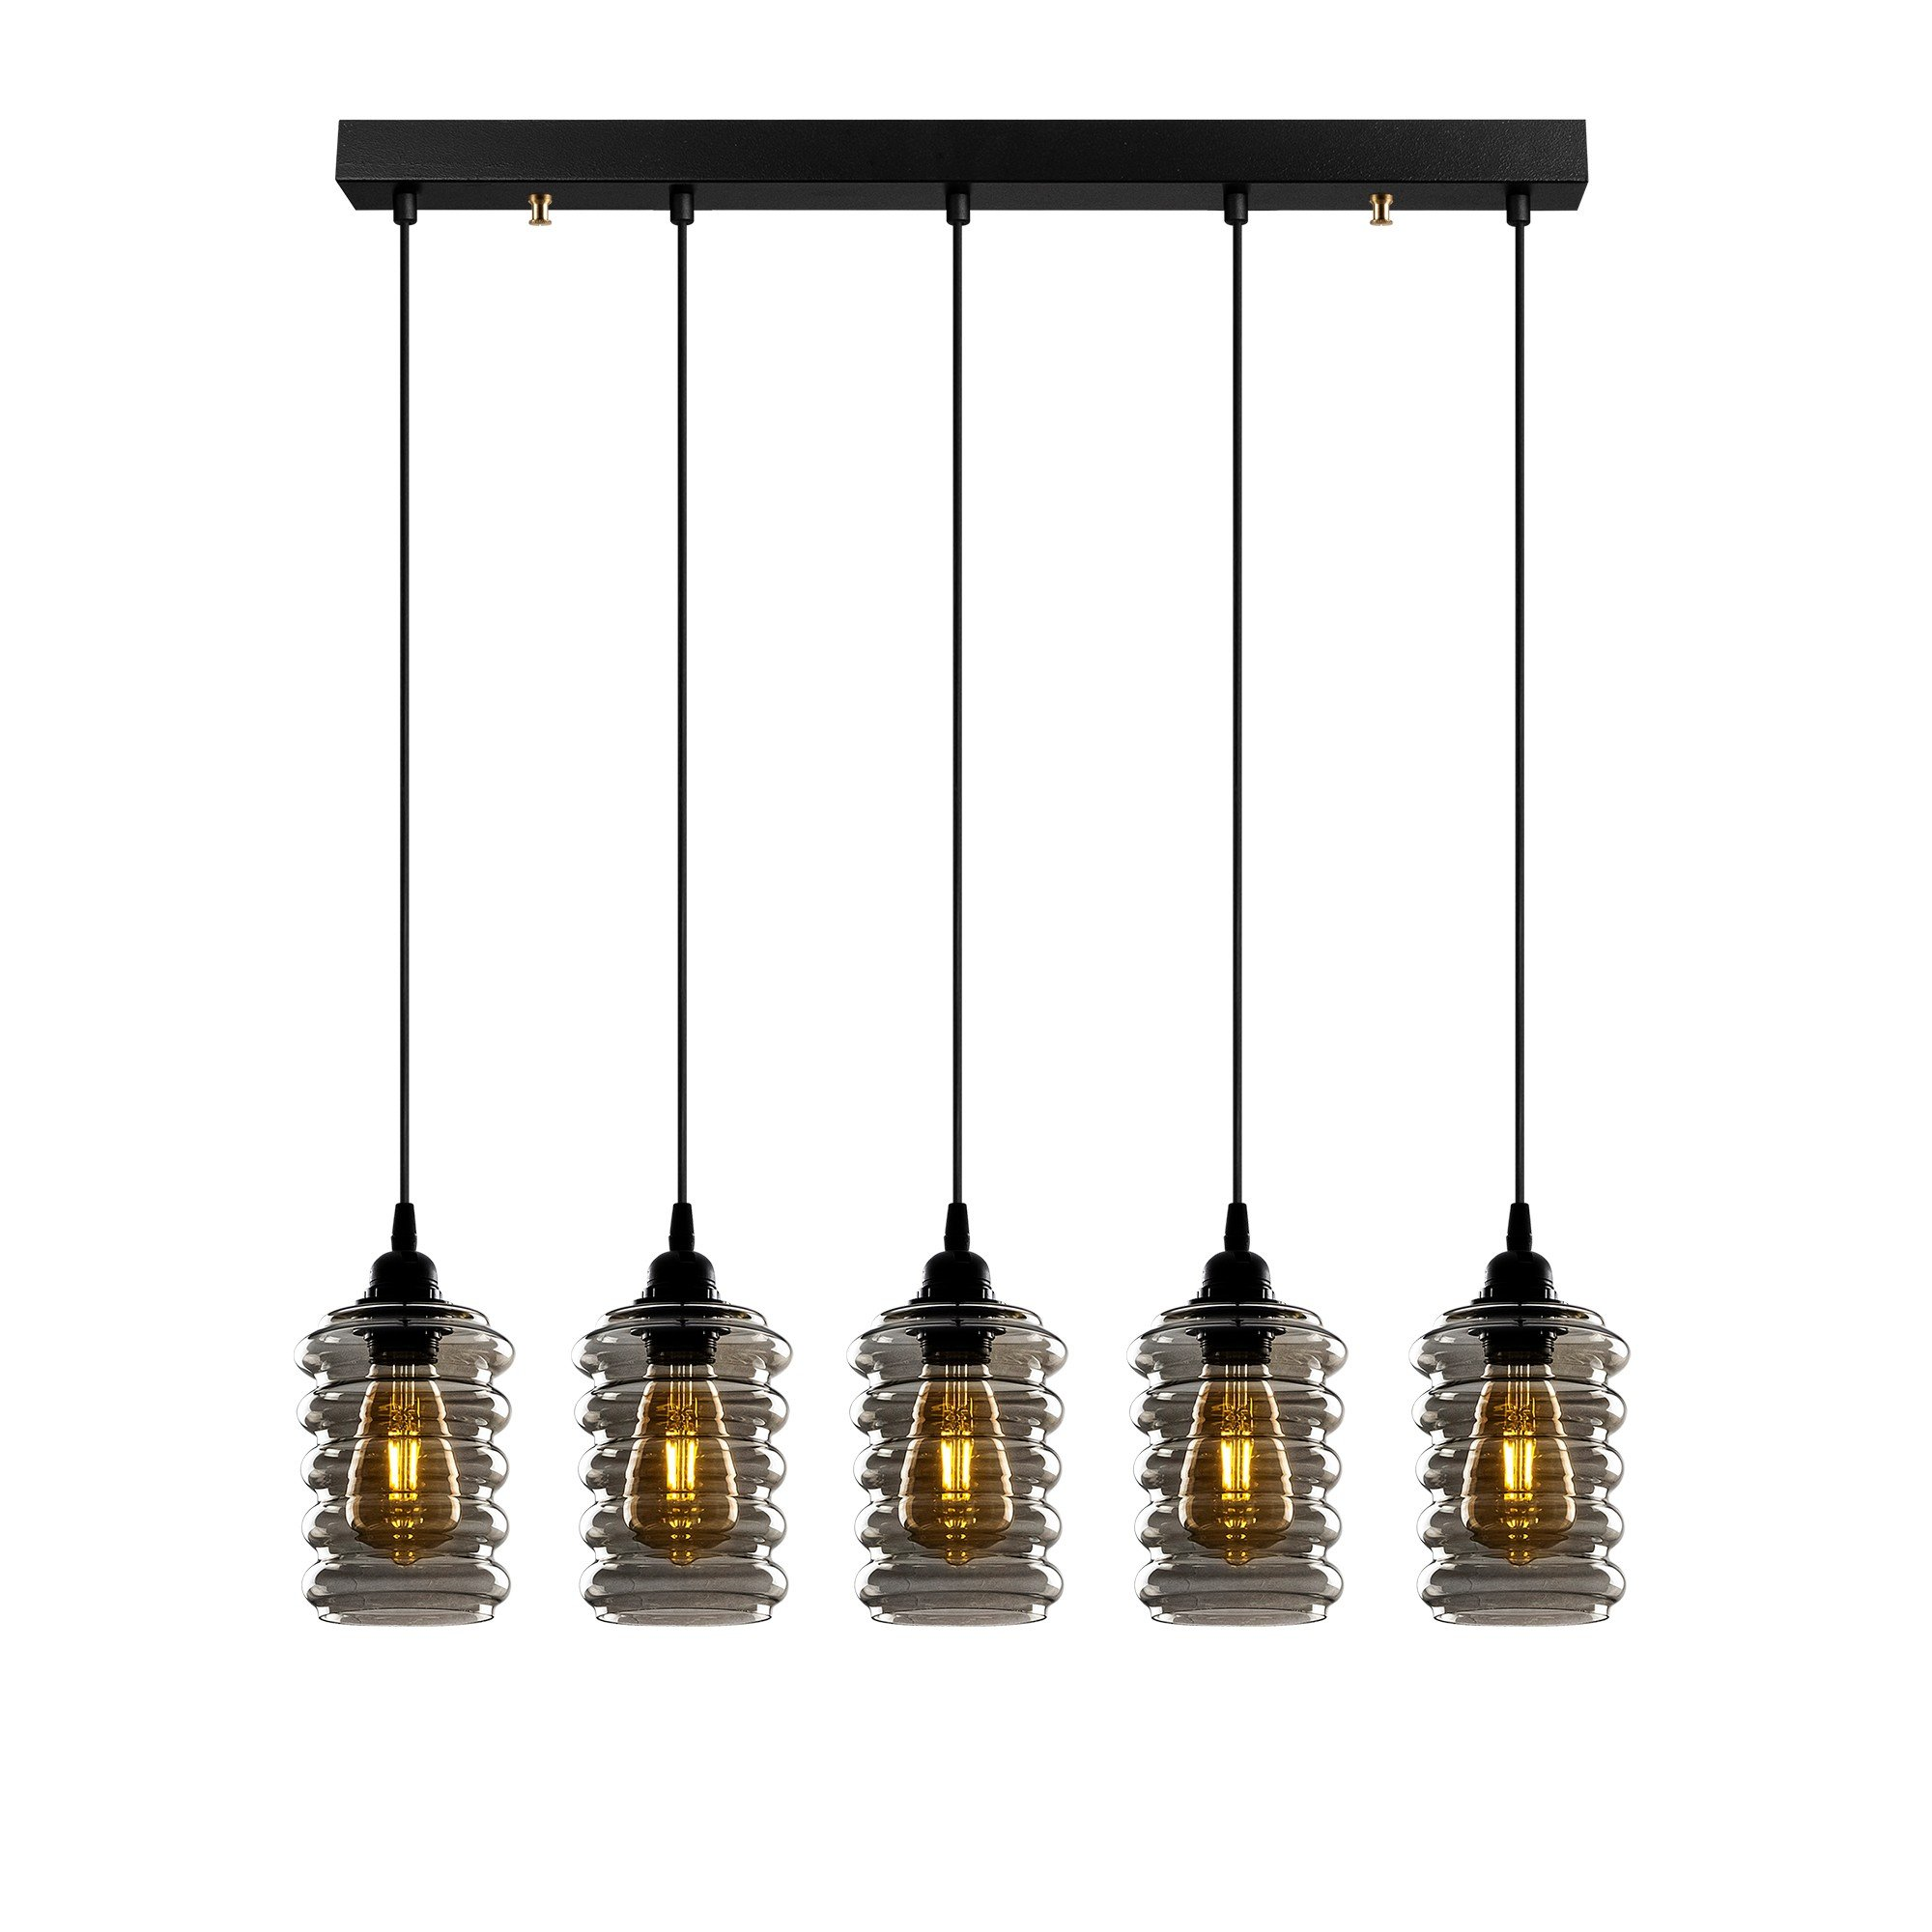 Hanglamp smoked glass 5 x E27 fitting - vooraanzicht lampen aan